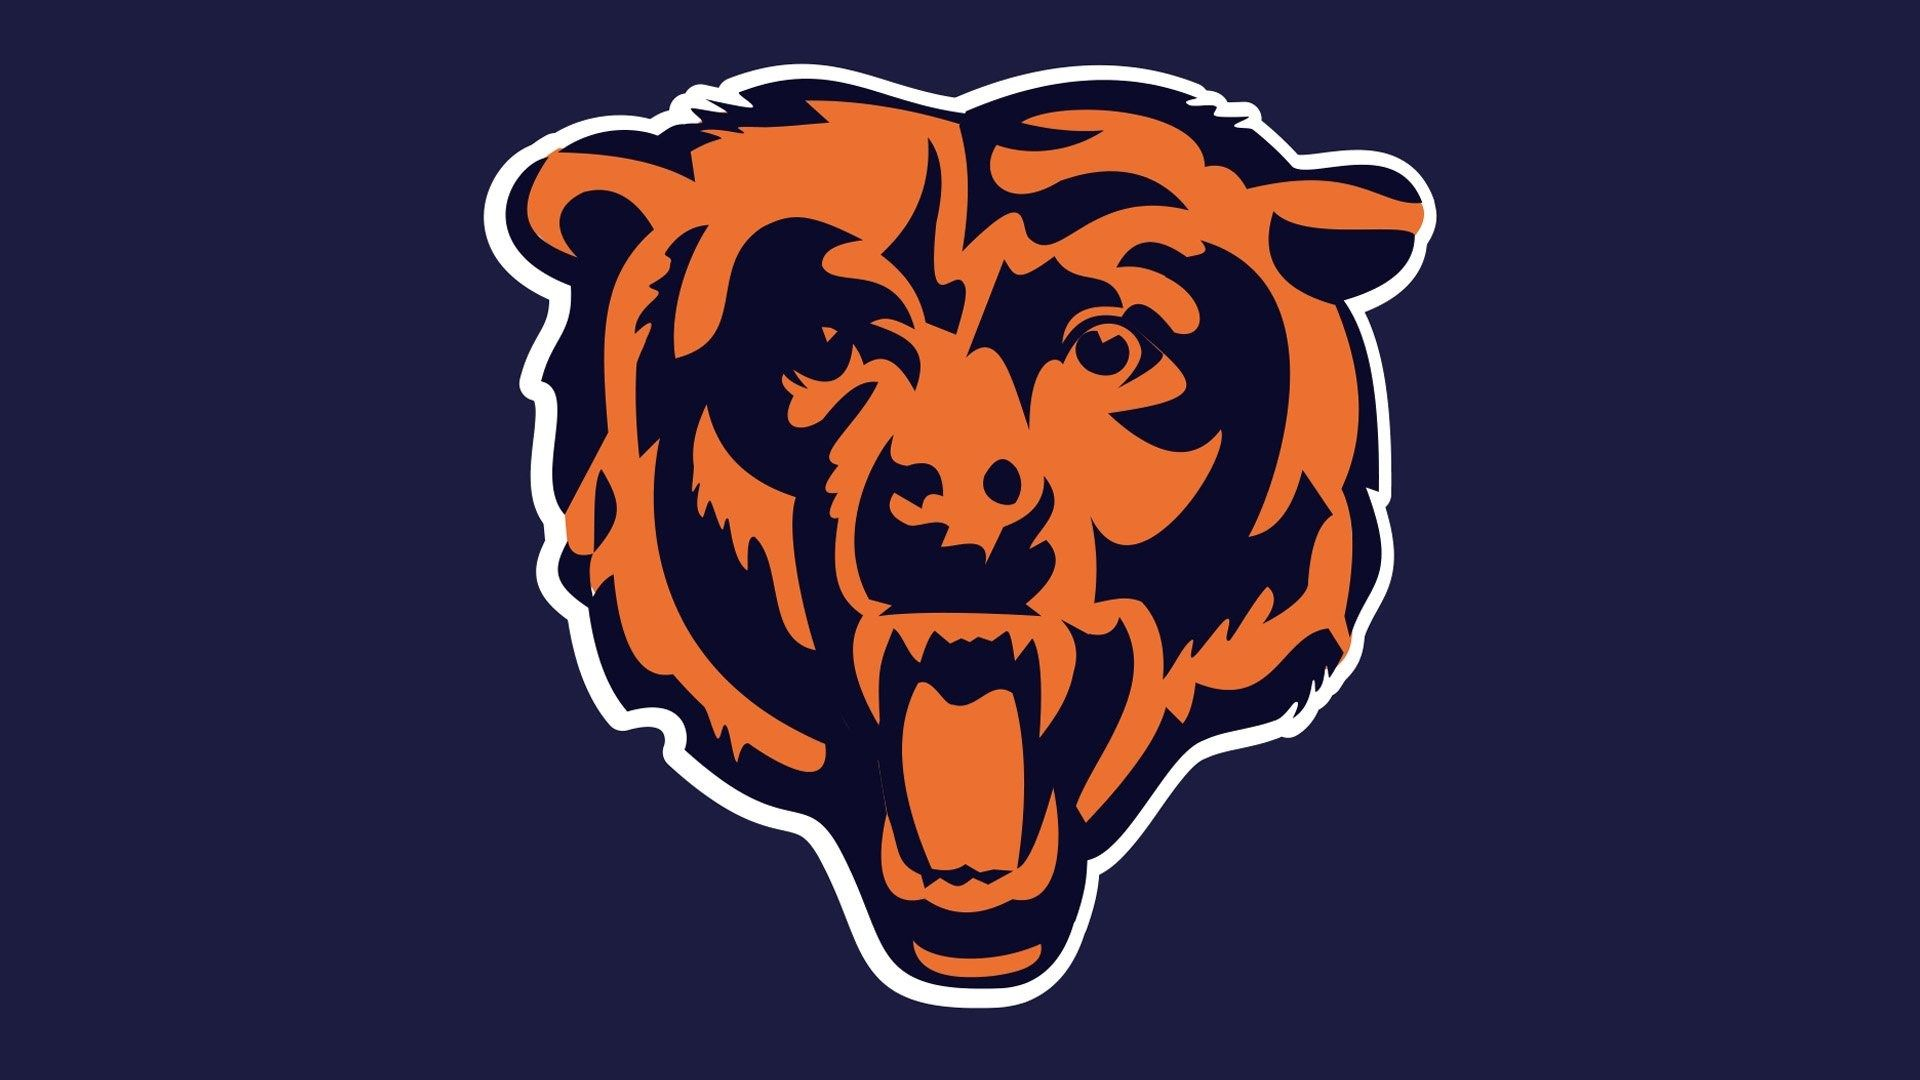 Logo American Football Blinds Wallpaper Sports Field Chicago Bears Bear Image Chicago Bears Logo Chicago Bears Bear Decal